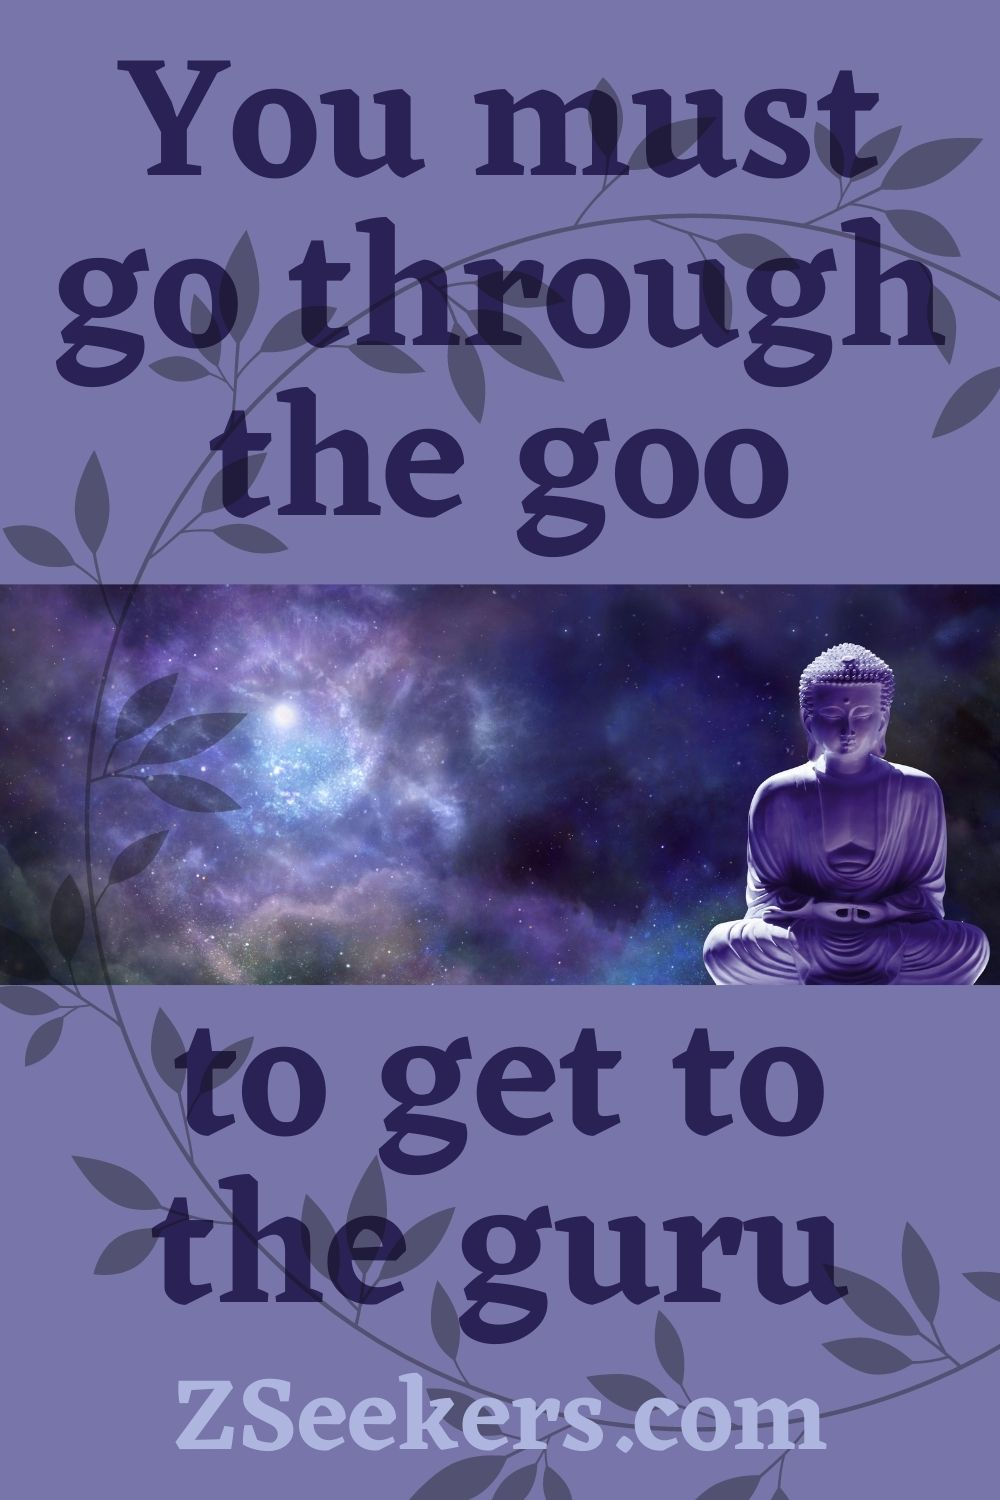 Go through the goo to get to the guru - saying on purple background with sitting Buddha statue and moon in cloudy sky